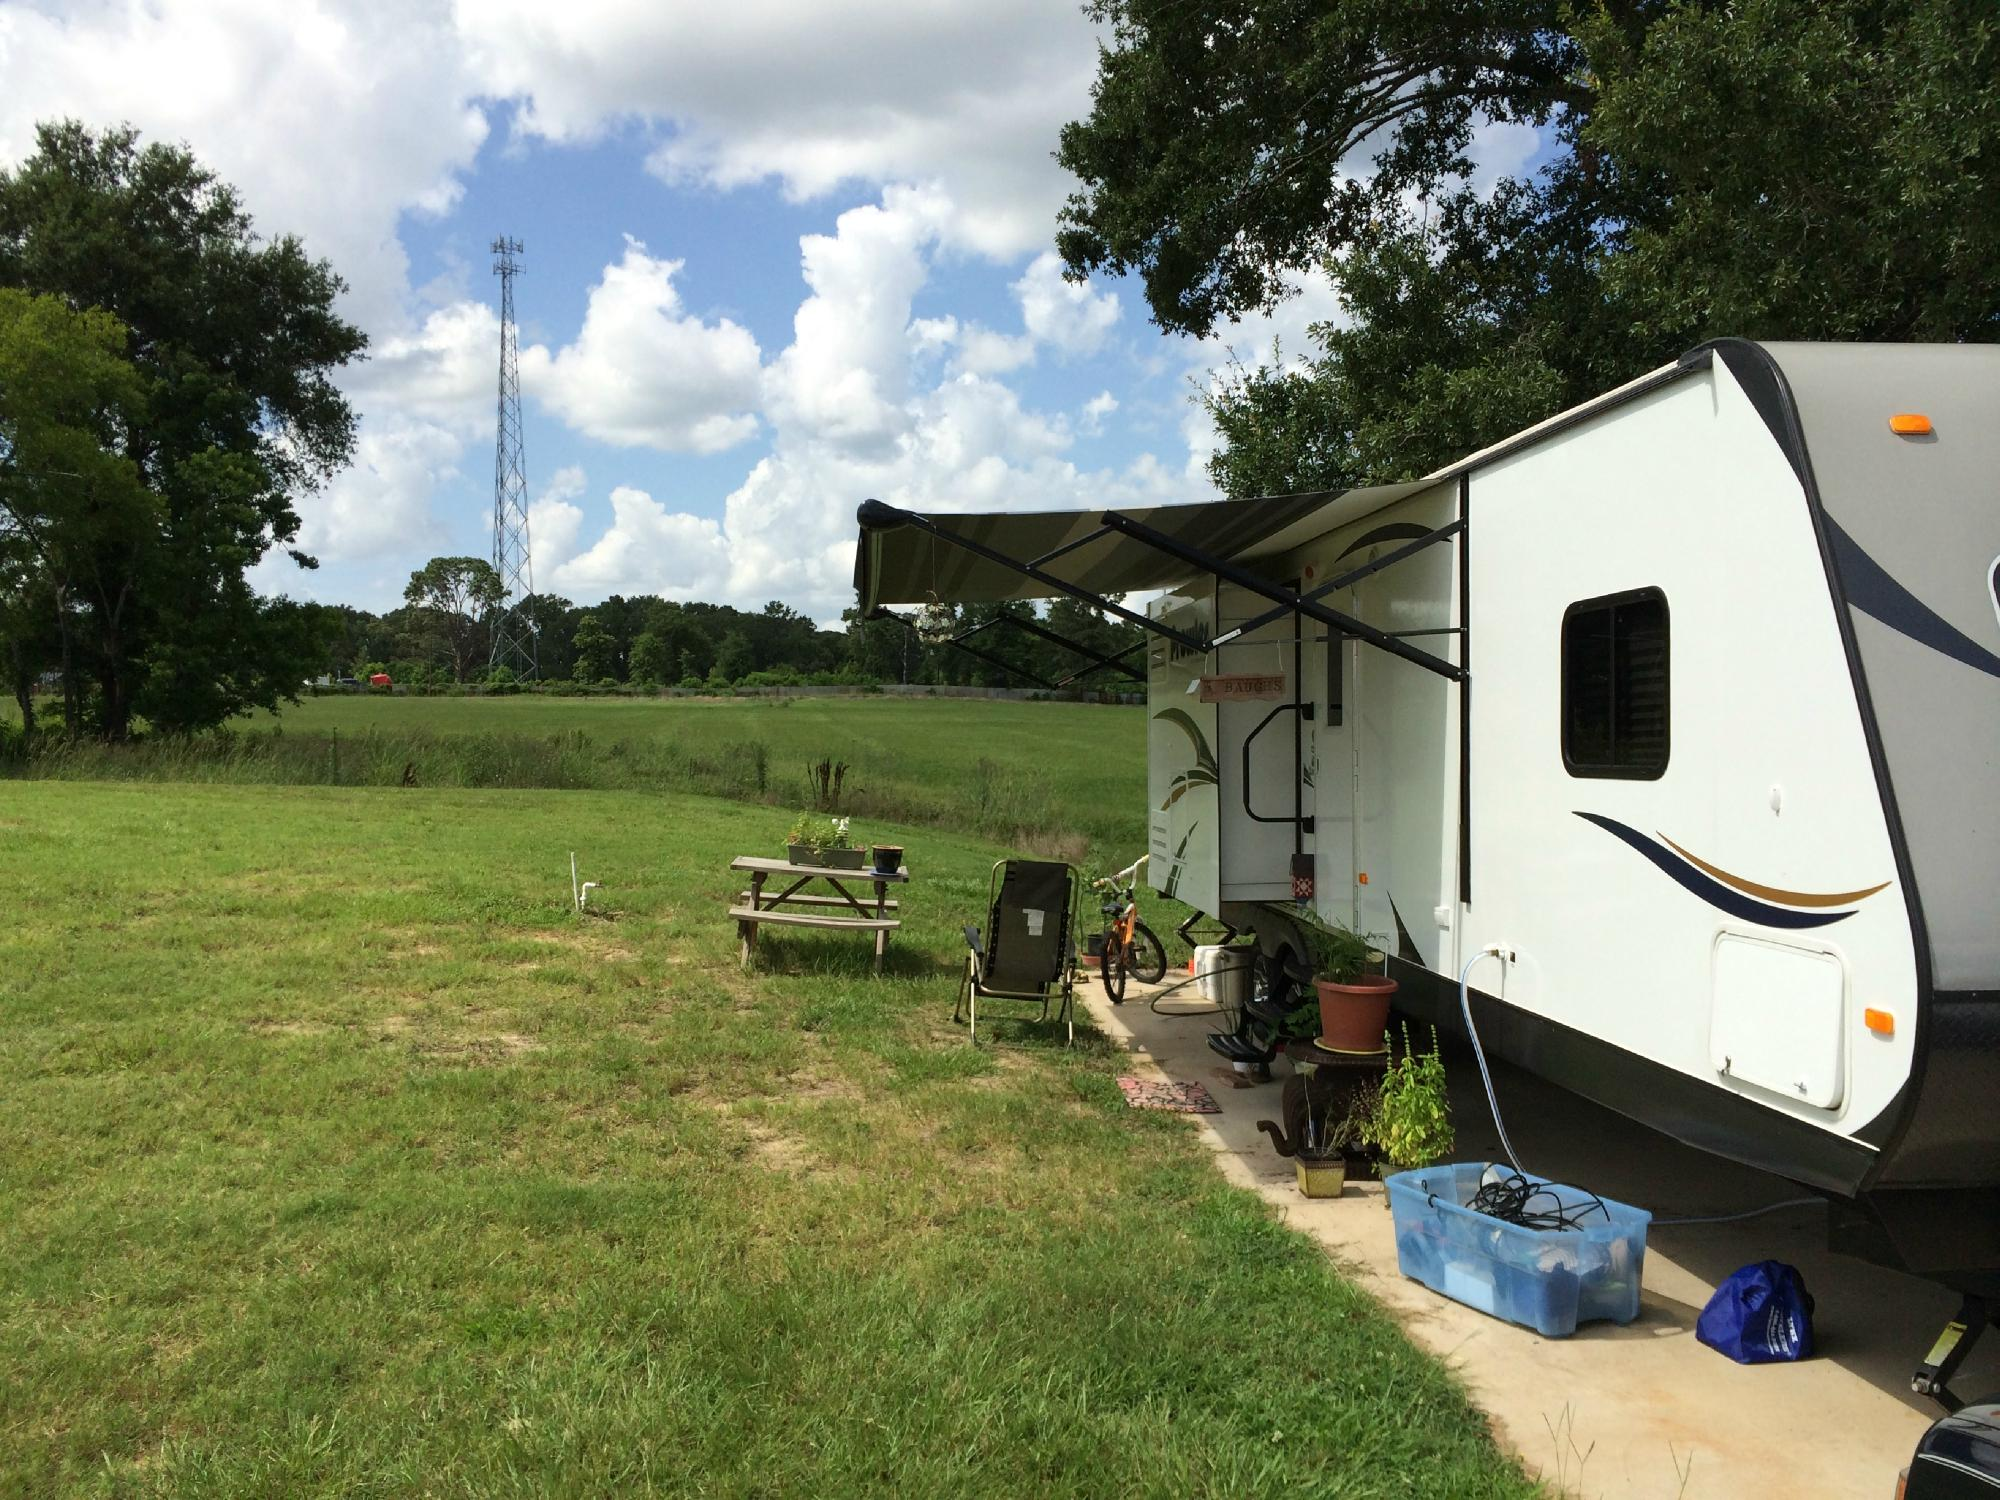 Lufkin RV Resort